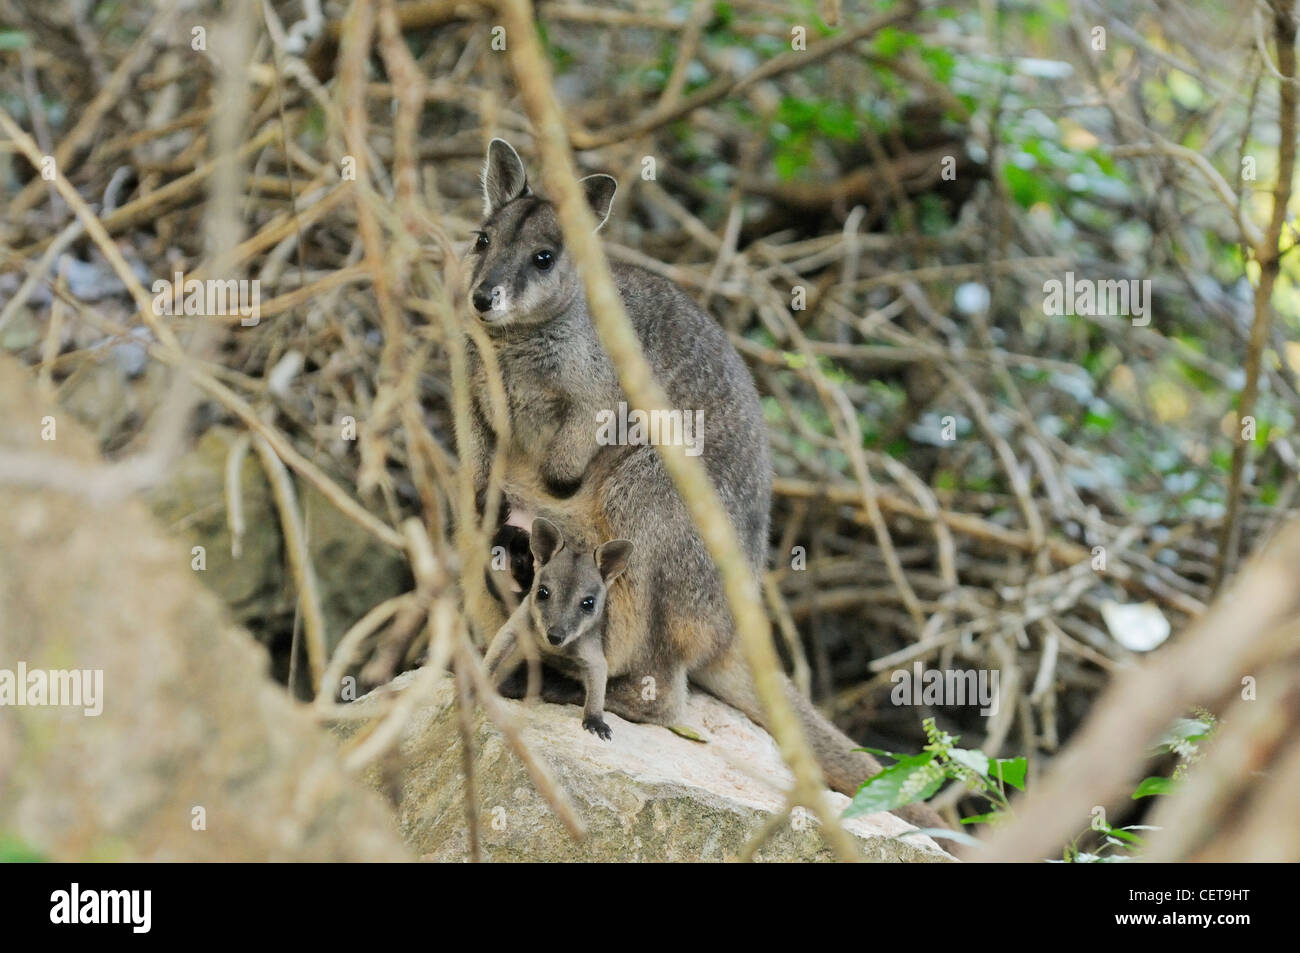 Unadorned Rock Wallaby Petrogale inornata Mother with joey in pouch Photographed in Queensland, Australia - Stock Image